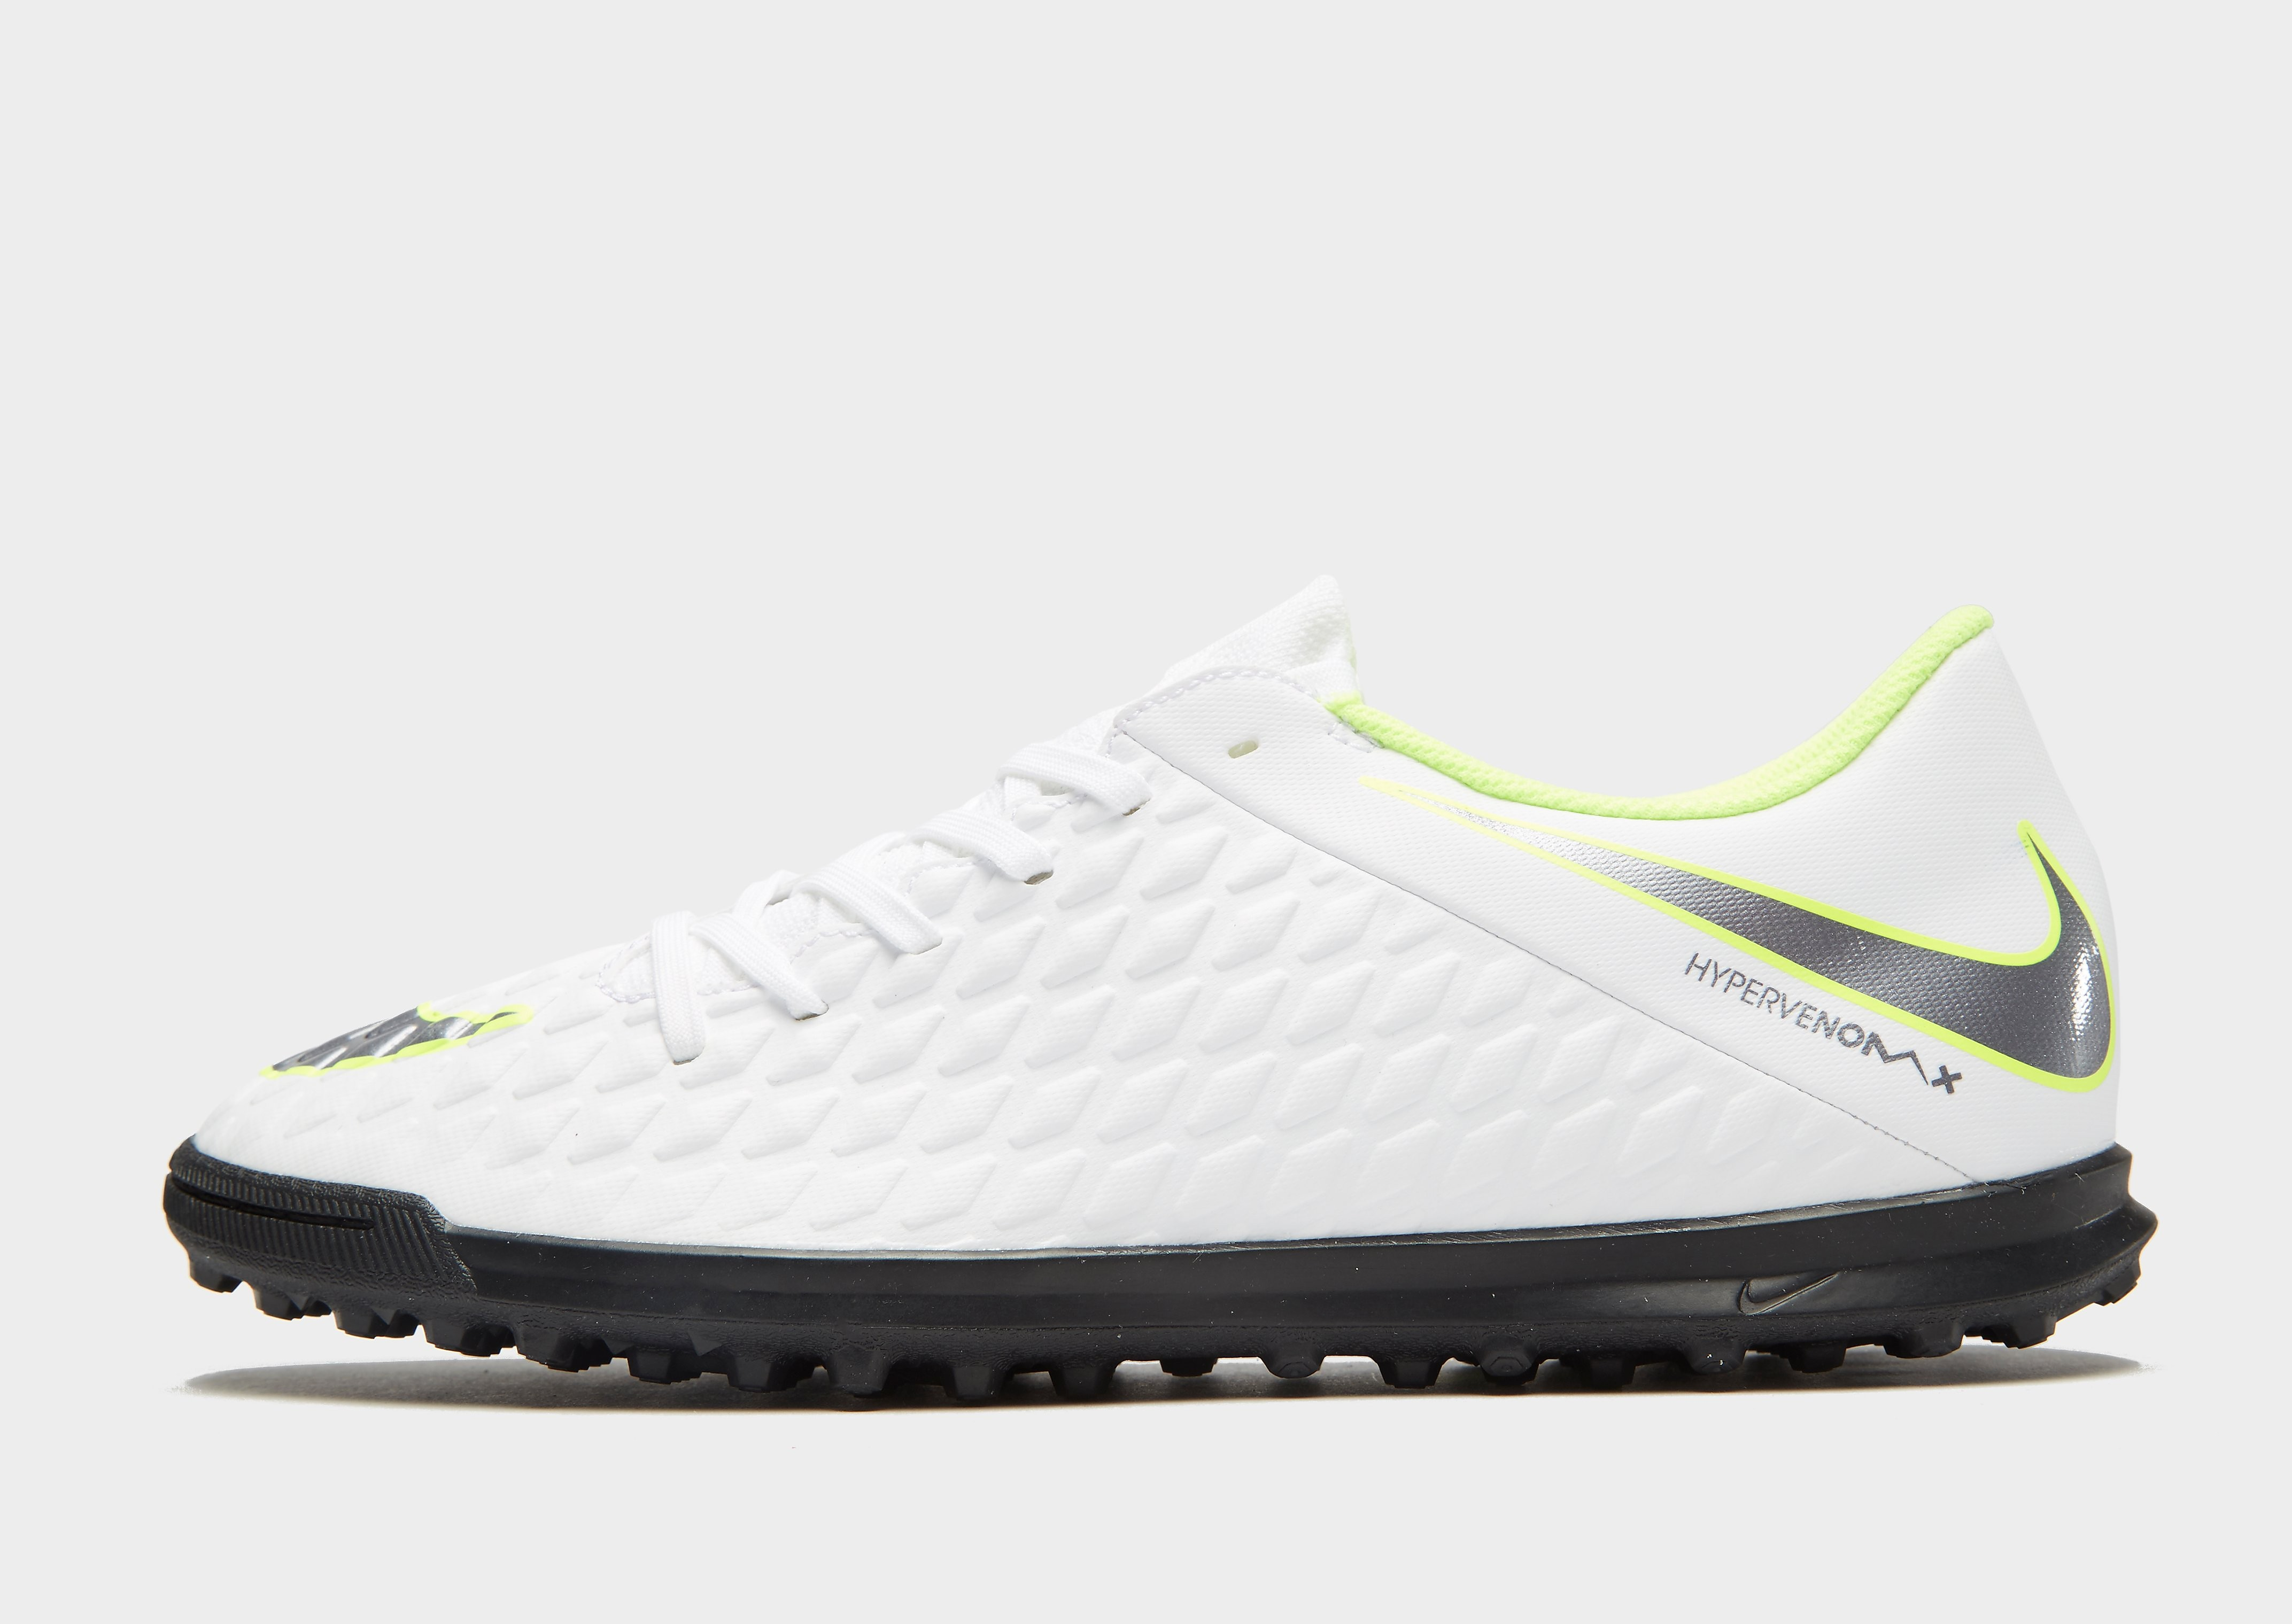 Nike Just Do It Hypervenom Club TF